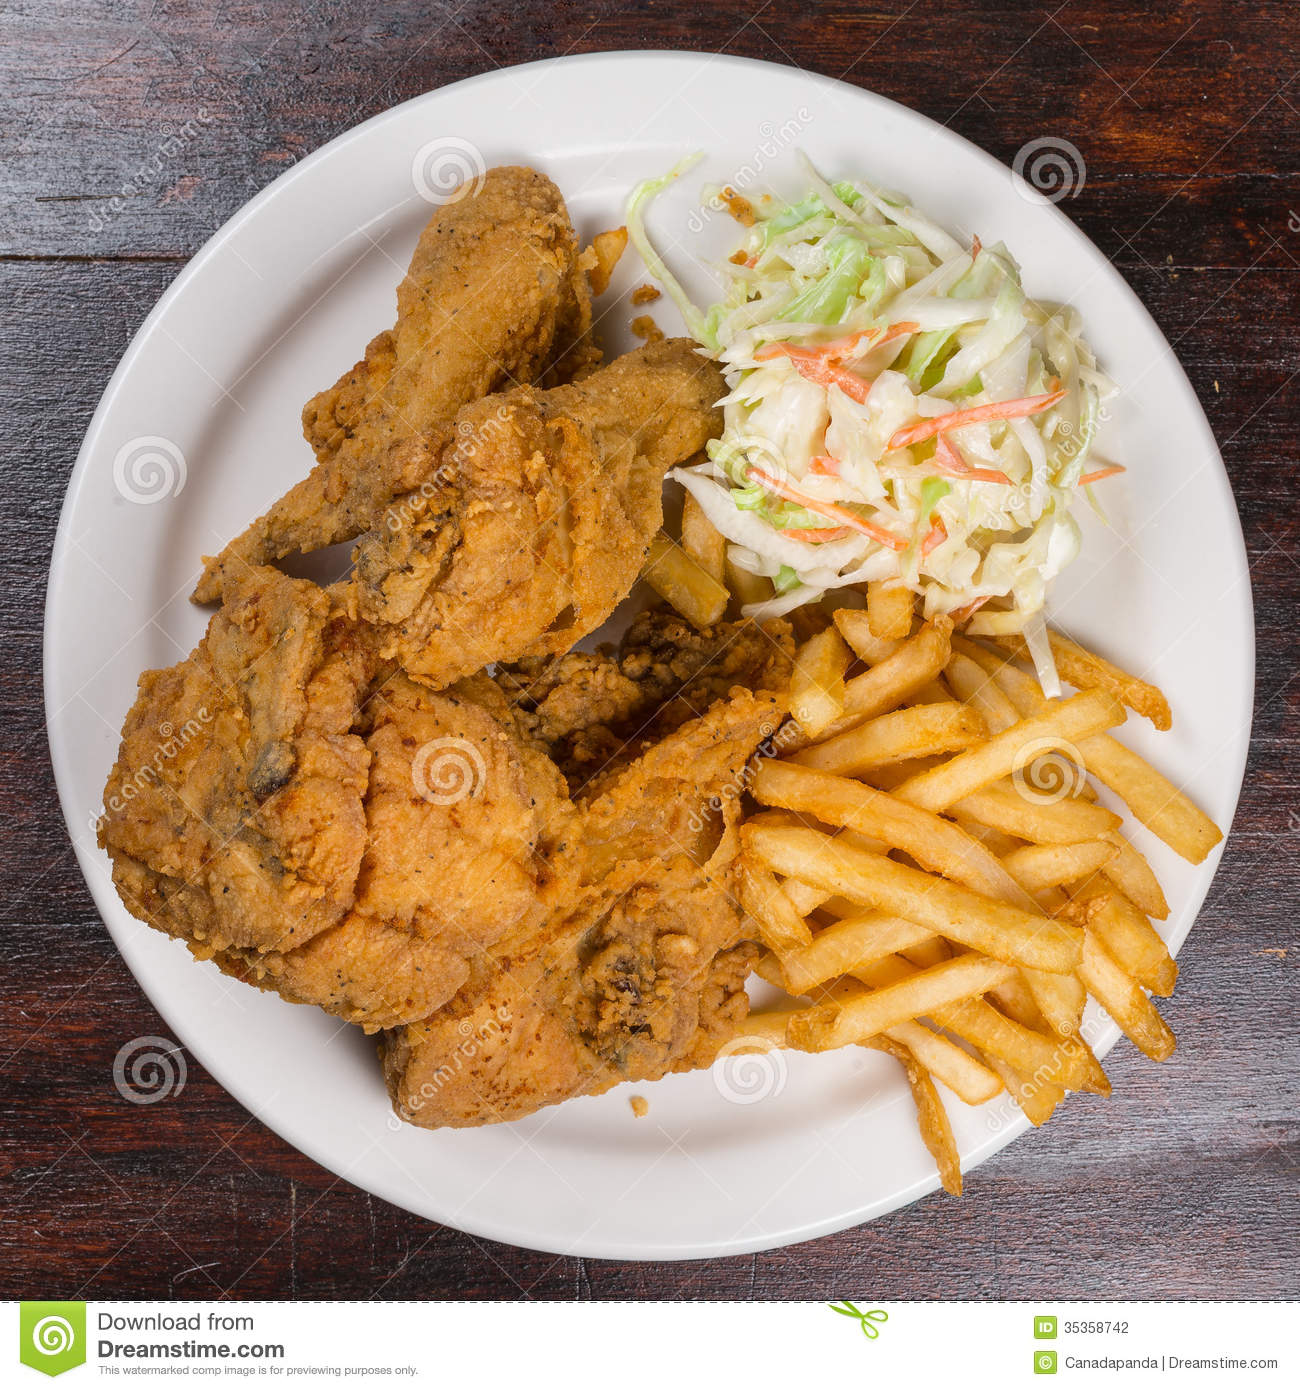 an overview of kfc a fried chicken business Fried chicken business plan you may think starting a fried chicken restaurant is as simple as so what if it's just a lowly kfc—make sure you include.